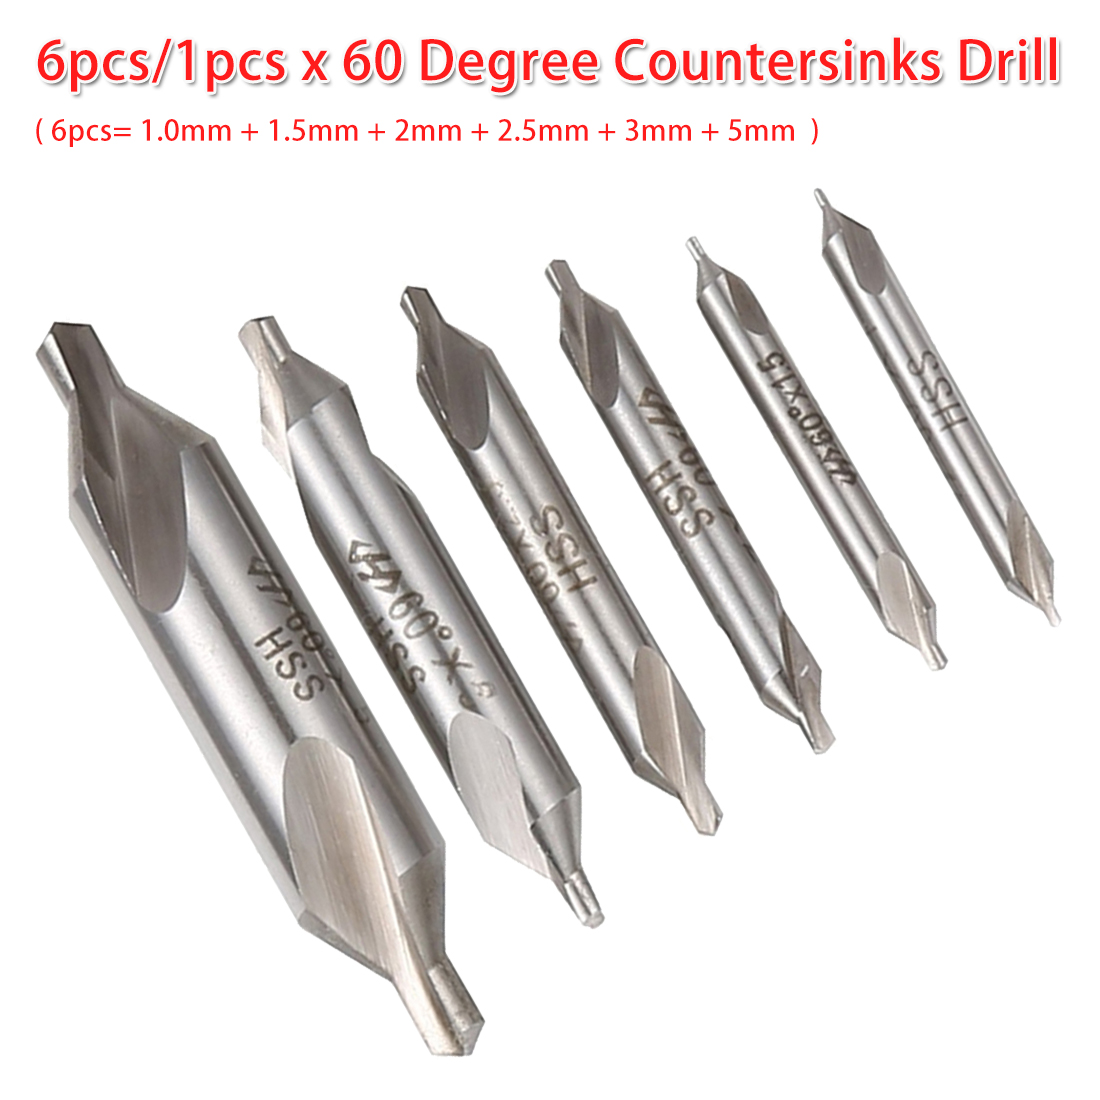 6pcs Center Drill Bits Kit Set Combined Countersink High Speed Steel Tool 1mm 1.5mm 2mm 2.5mm 3mm 5mm